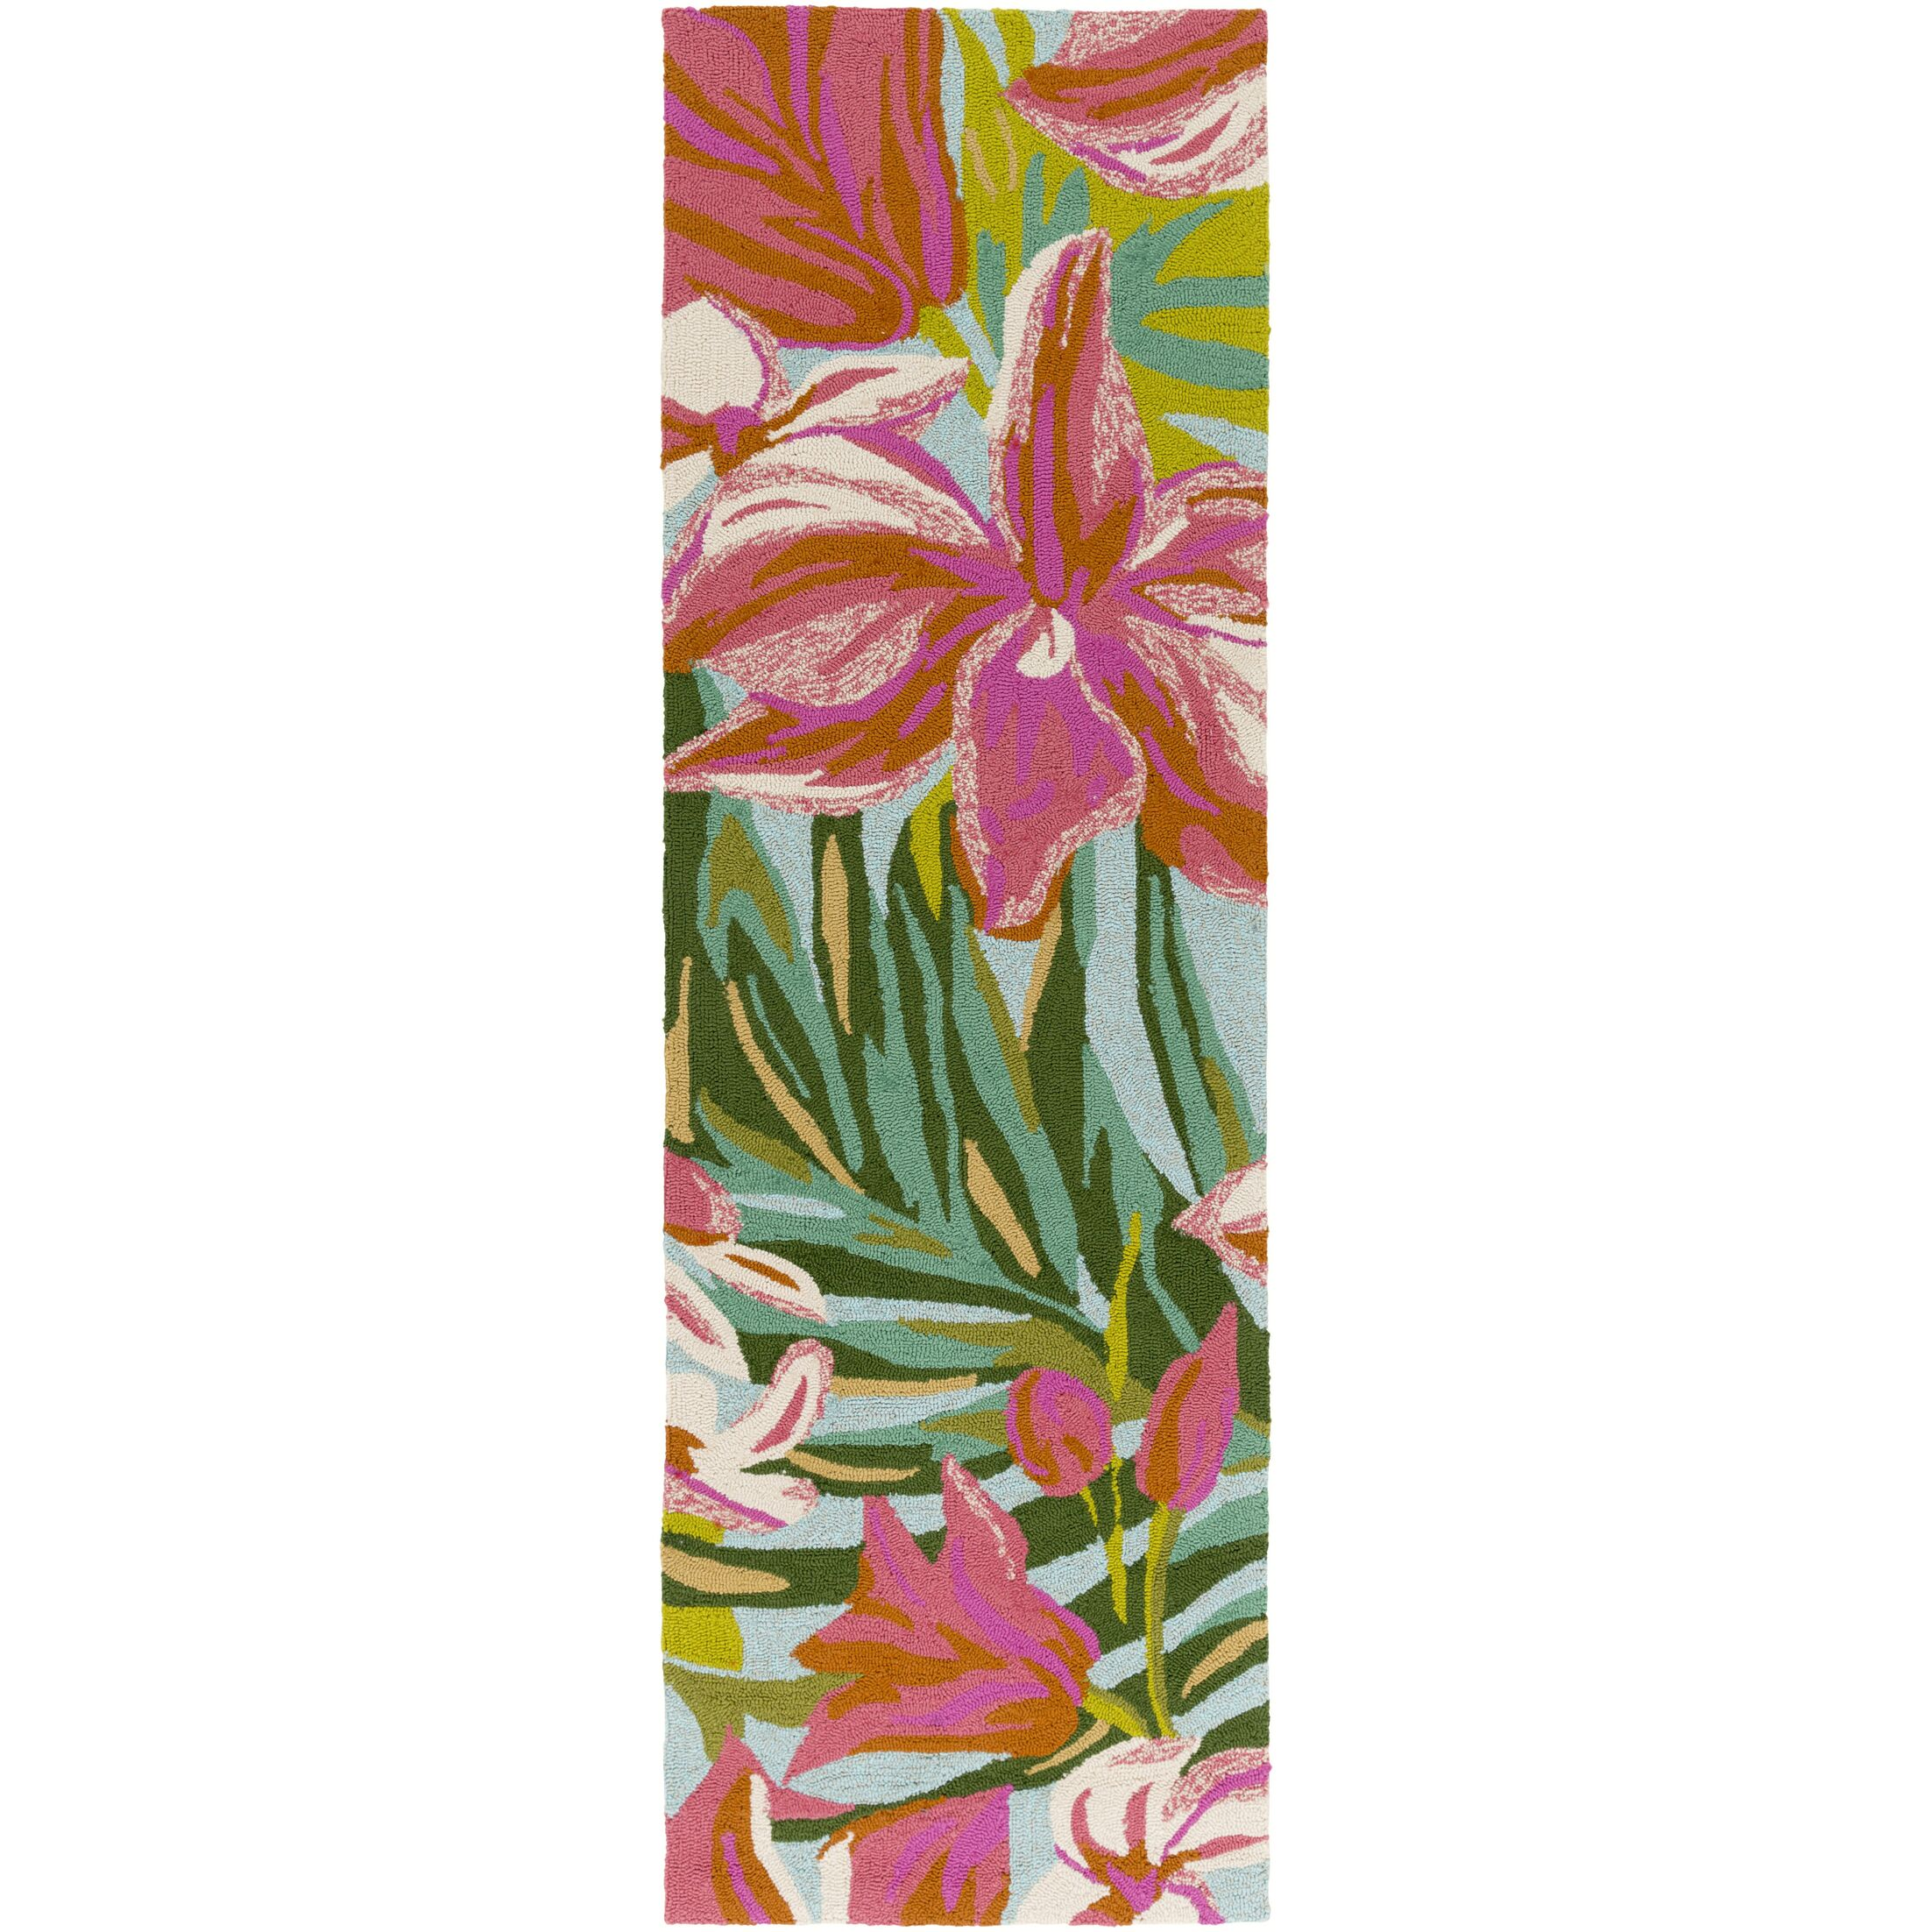 Shelly Bay Hand Woven Pink/Green Indoor/Outdoor Area Rug Rug Size: Rectangle 4' x 6'